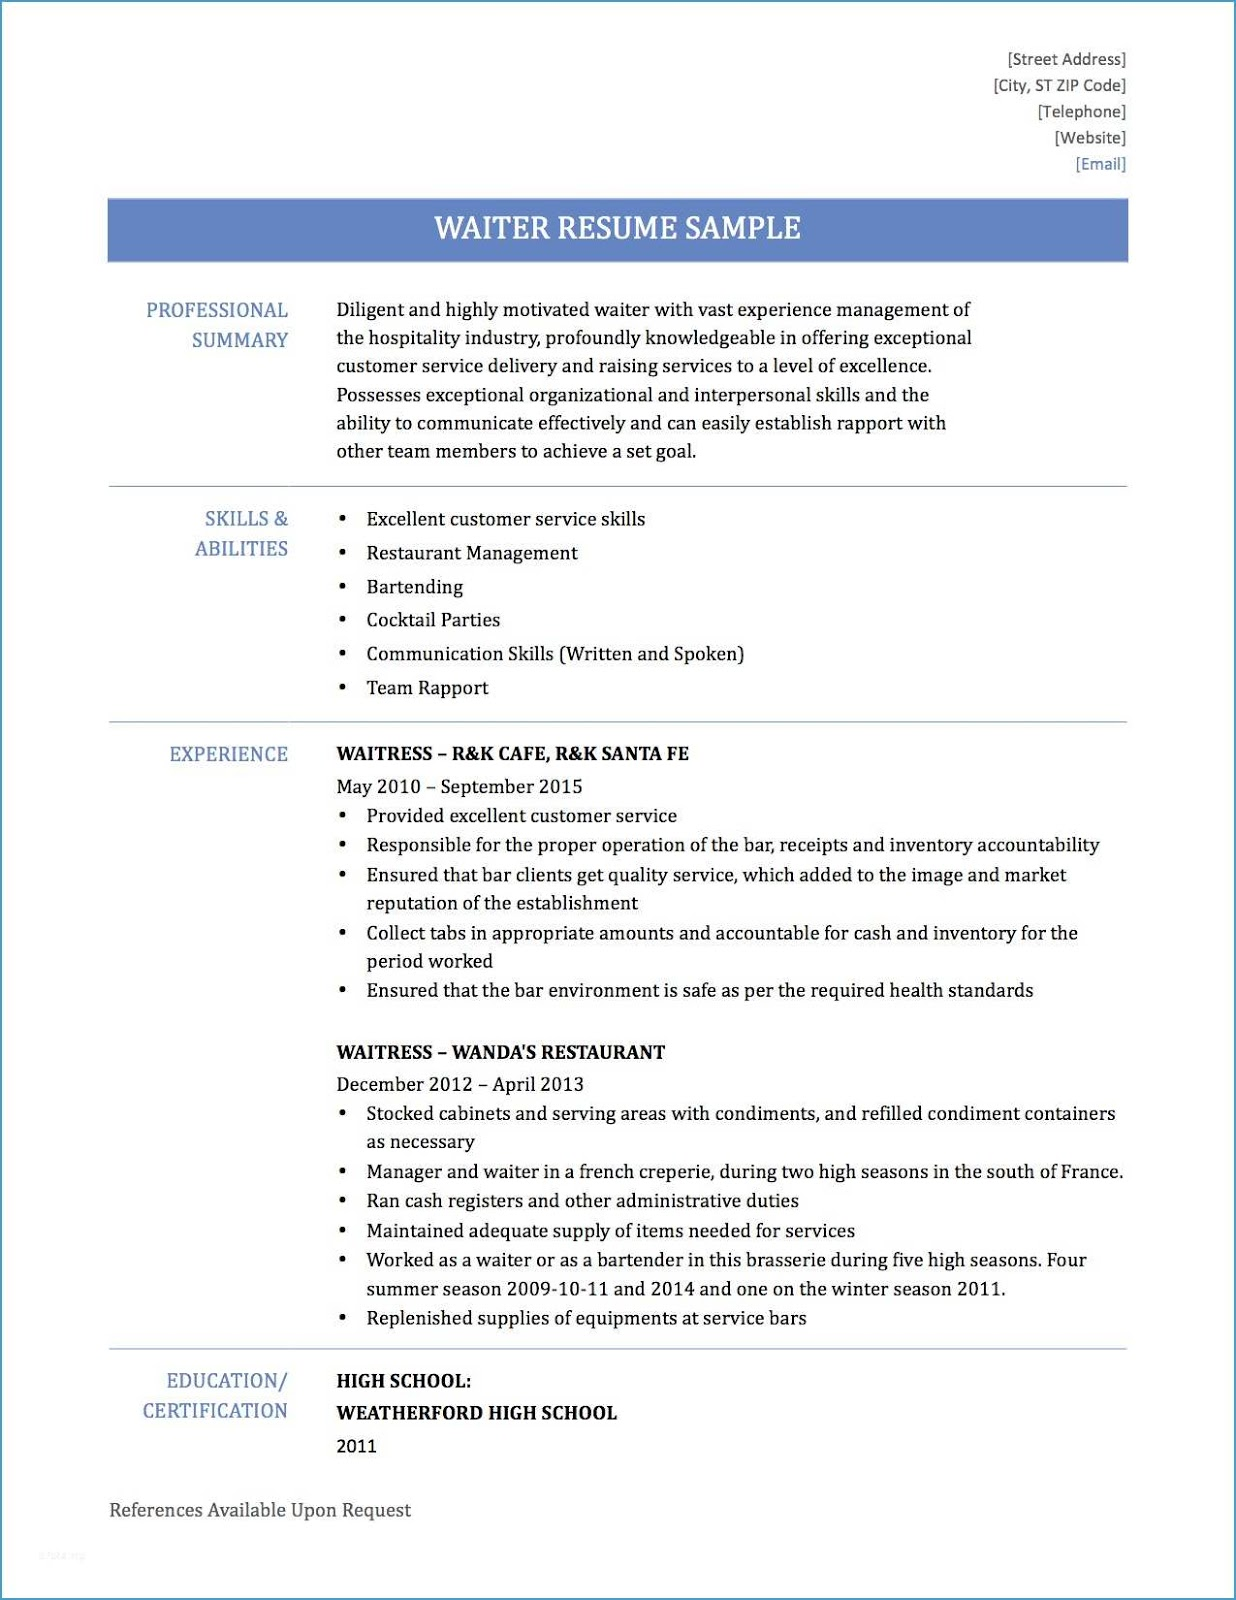 Waiter Resume Sample 2019 Pdf Examples 2020